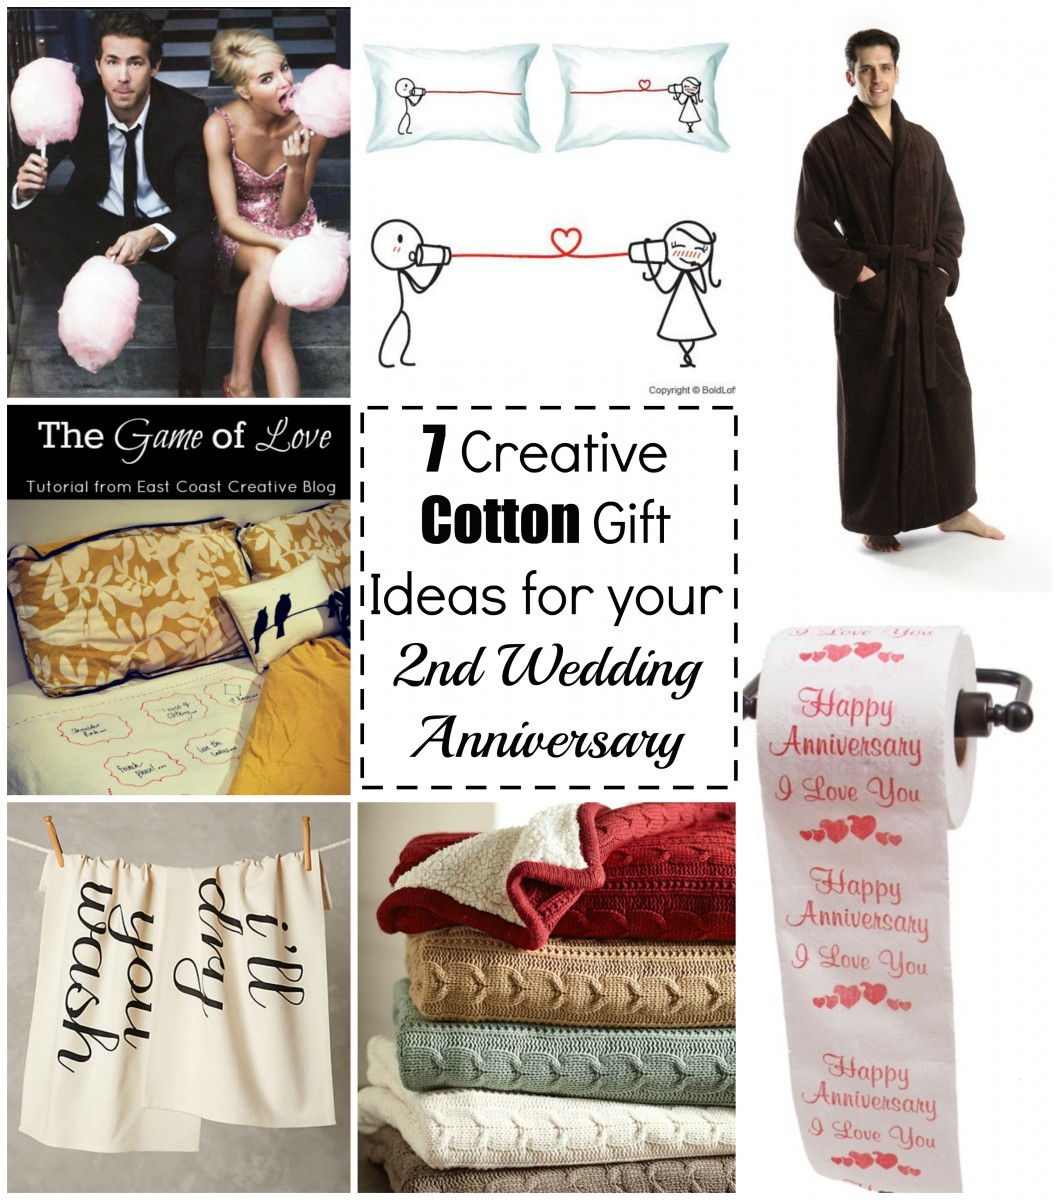 outstanding second marriage wedding gift ideas 9 exactly inspiration ...